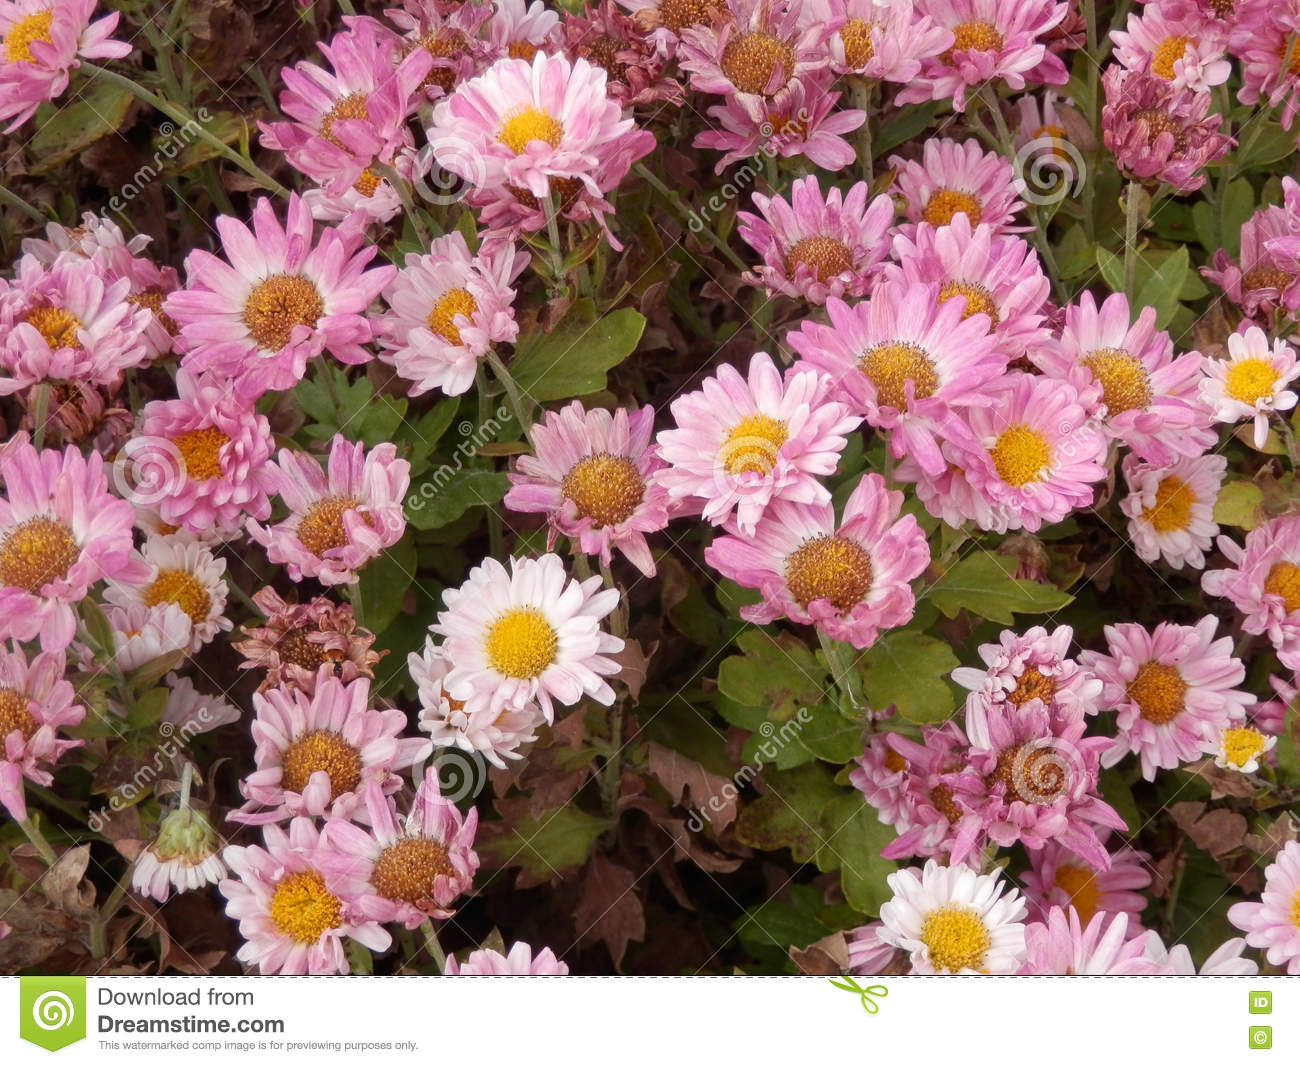 Pink Daisy Flowers Stock Photo Image Of Outdoors Growth 80469230